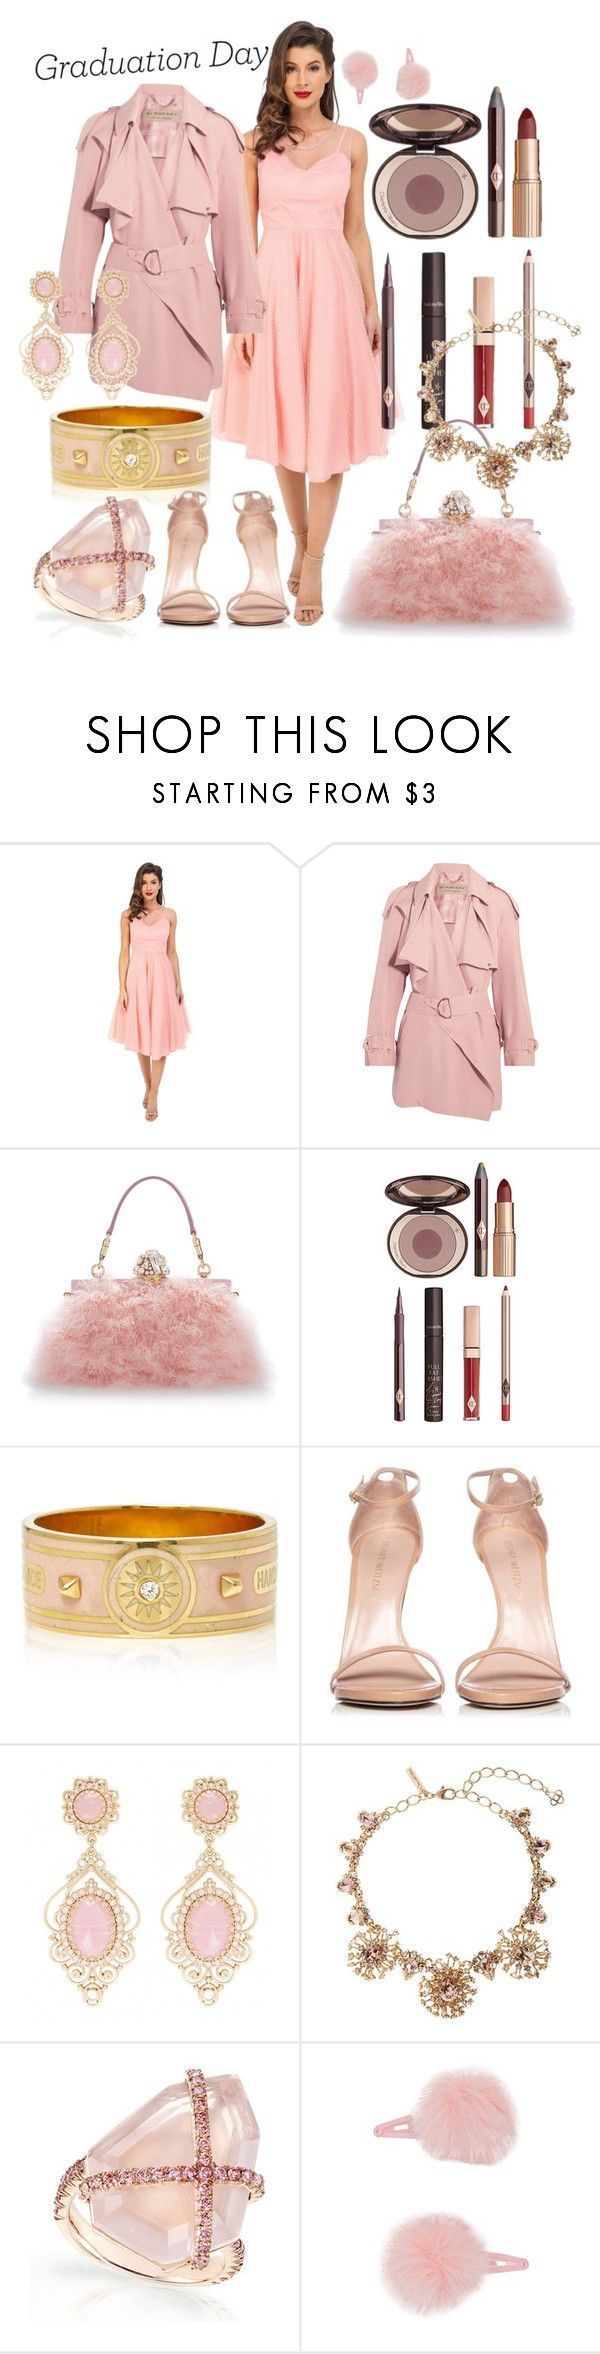 """""""pinky grad girl"""" by caroline-buster-brown ❤ liked on Polyvore featuring Unique Vintage, Burberry, Dolce&Gabbana, Charlotte Tilbury, Foundrae, Stuart Weitzman, Oscar de la Renta, Forever 21 and Graduation"""